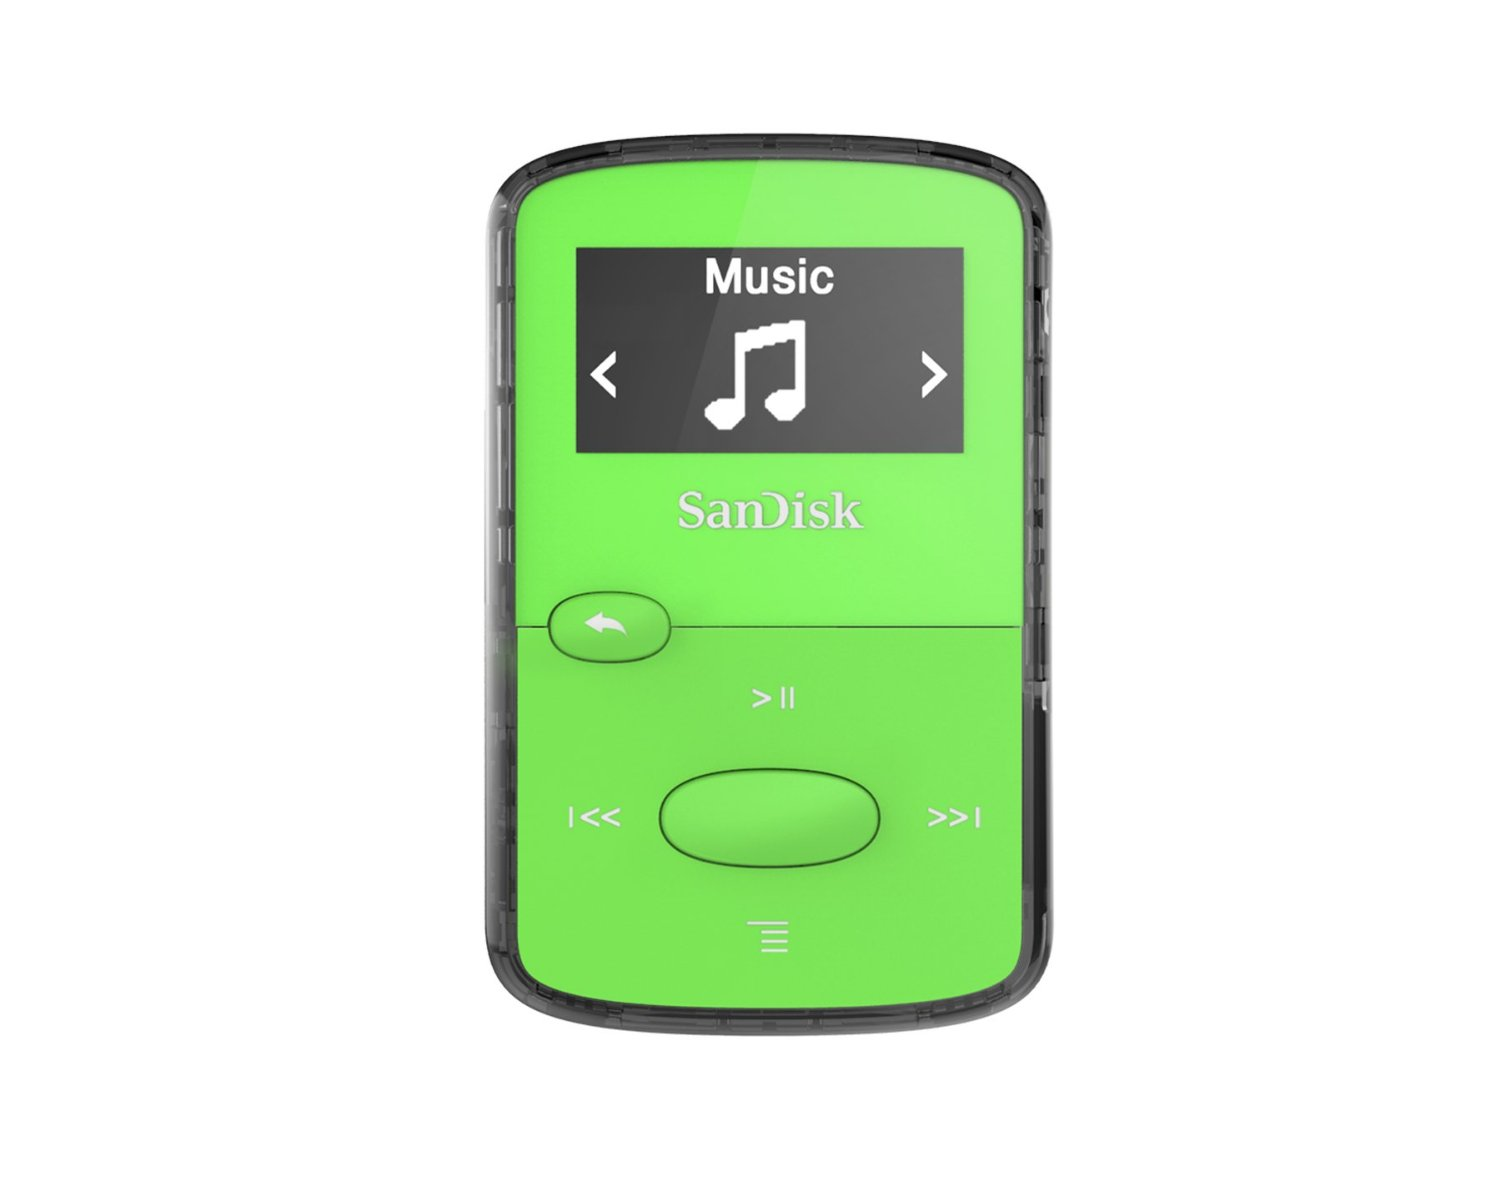 SanDisk CLip Jam MP3 Player 8GB, microSDHC, Radio FM, Green